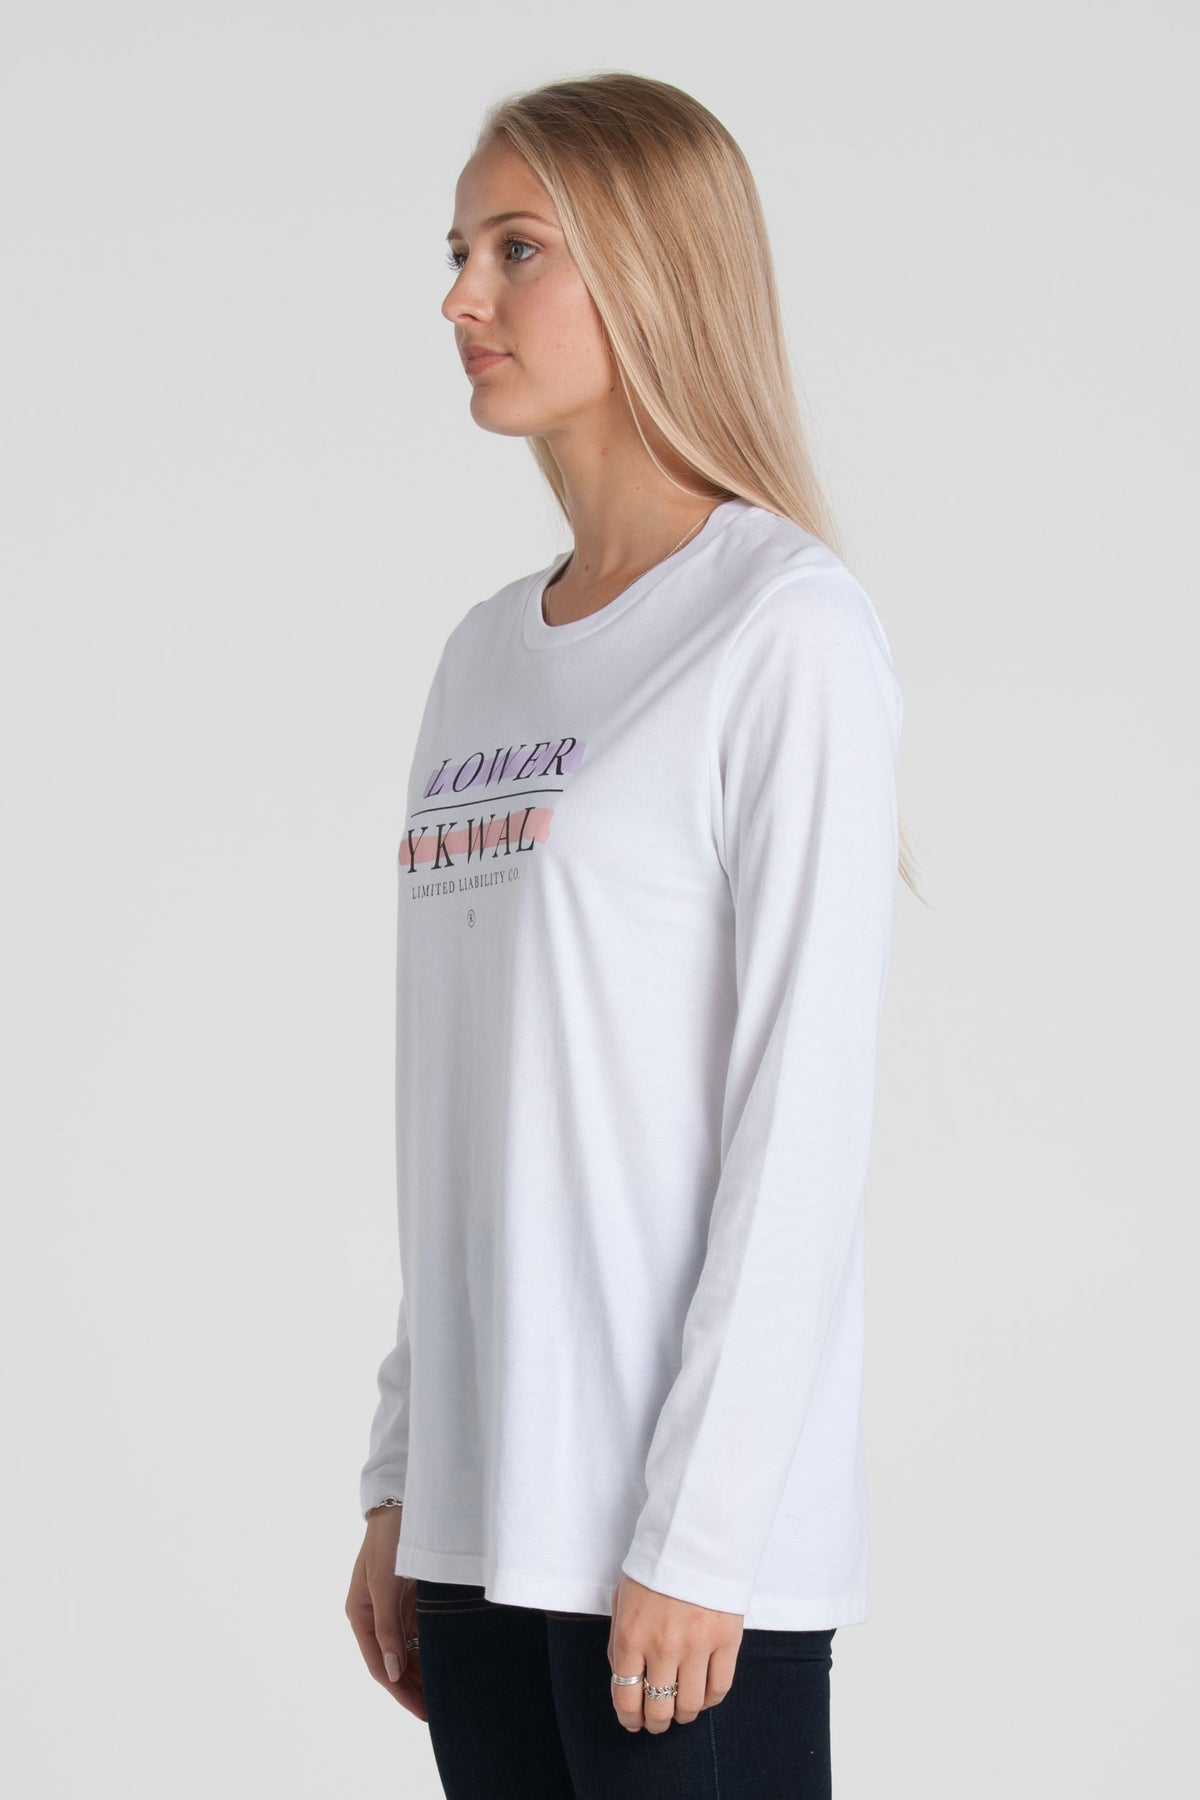 Moonlite Relax Long Sleeve - White